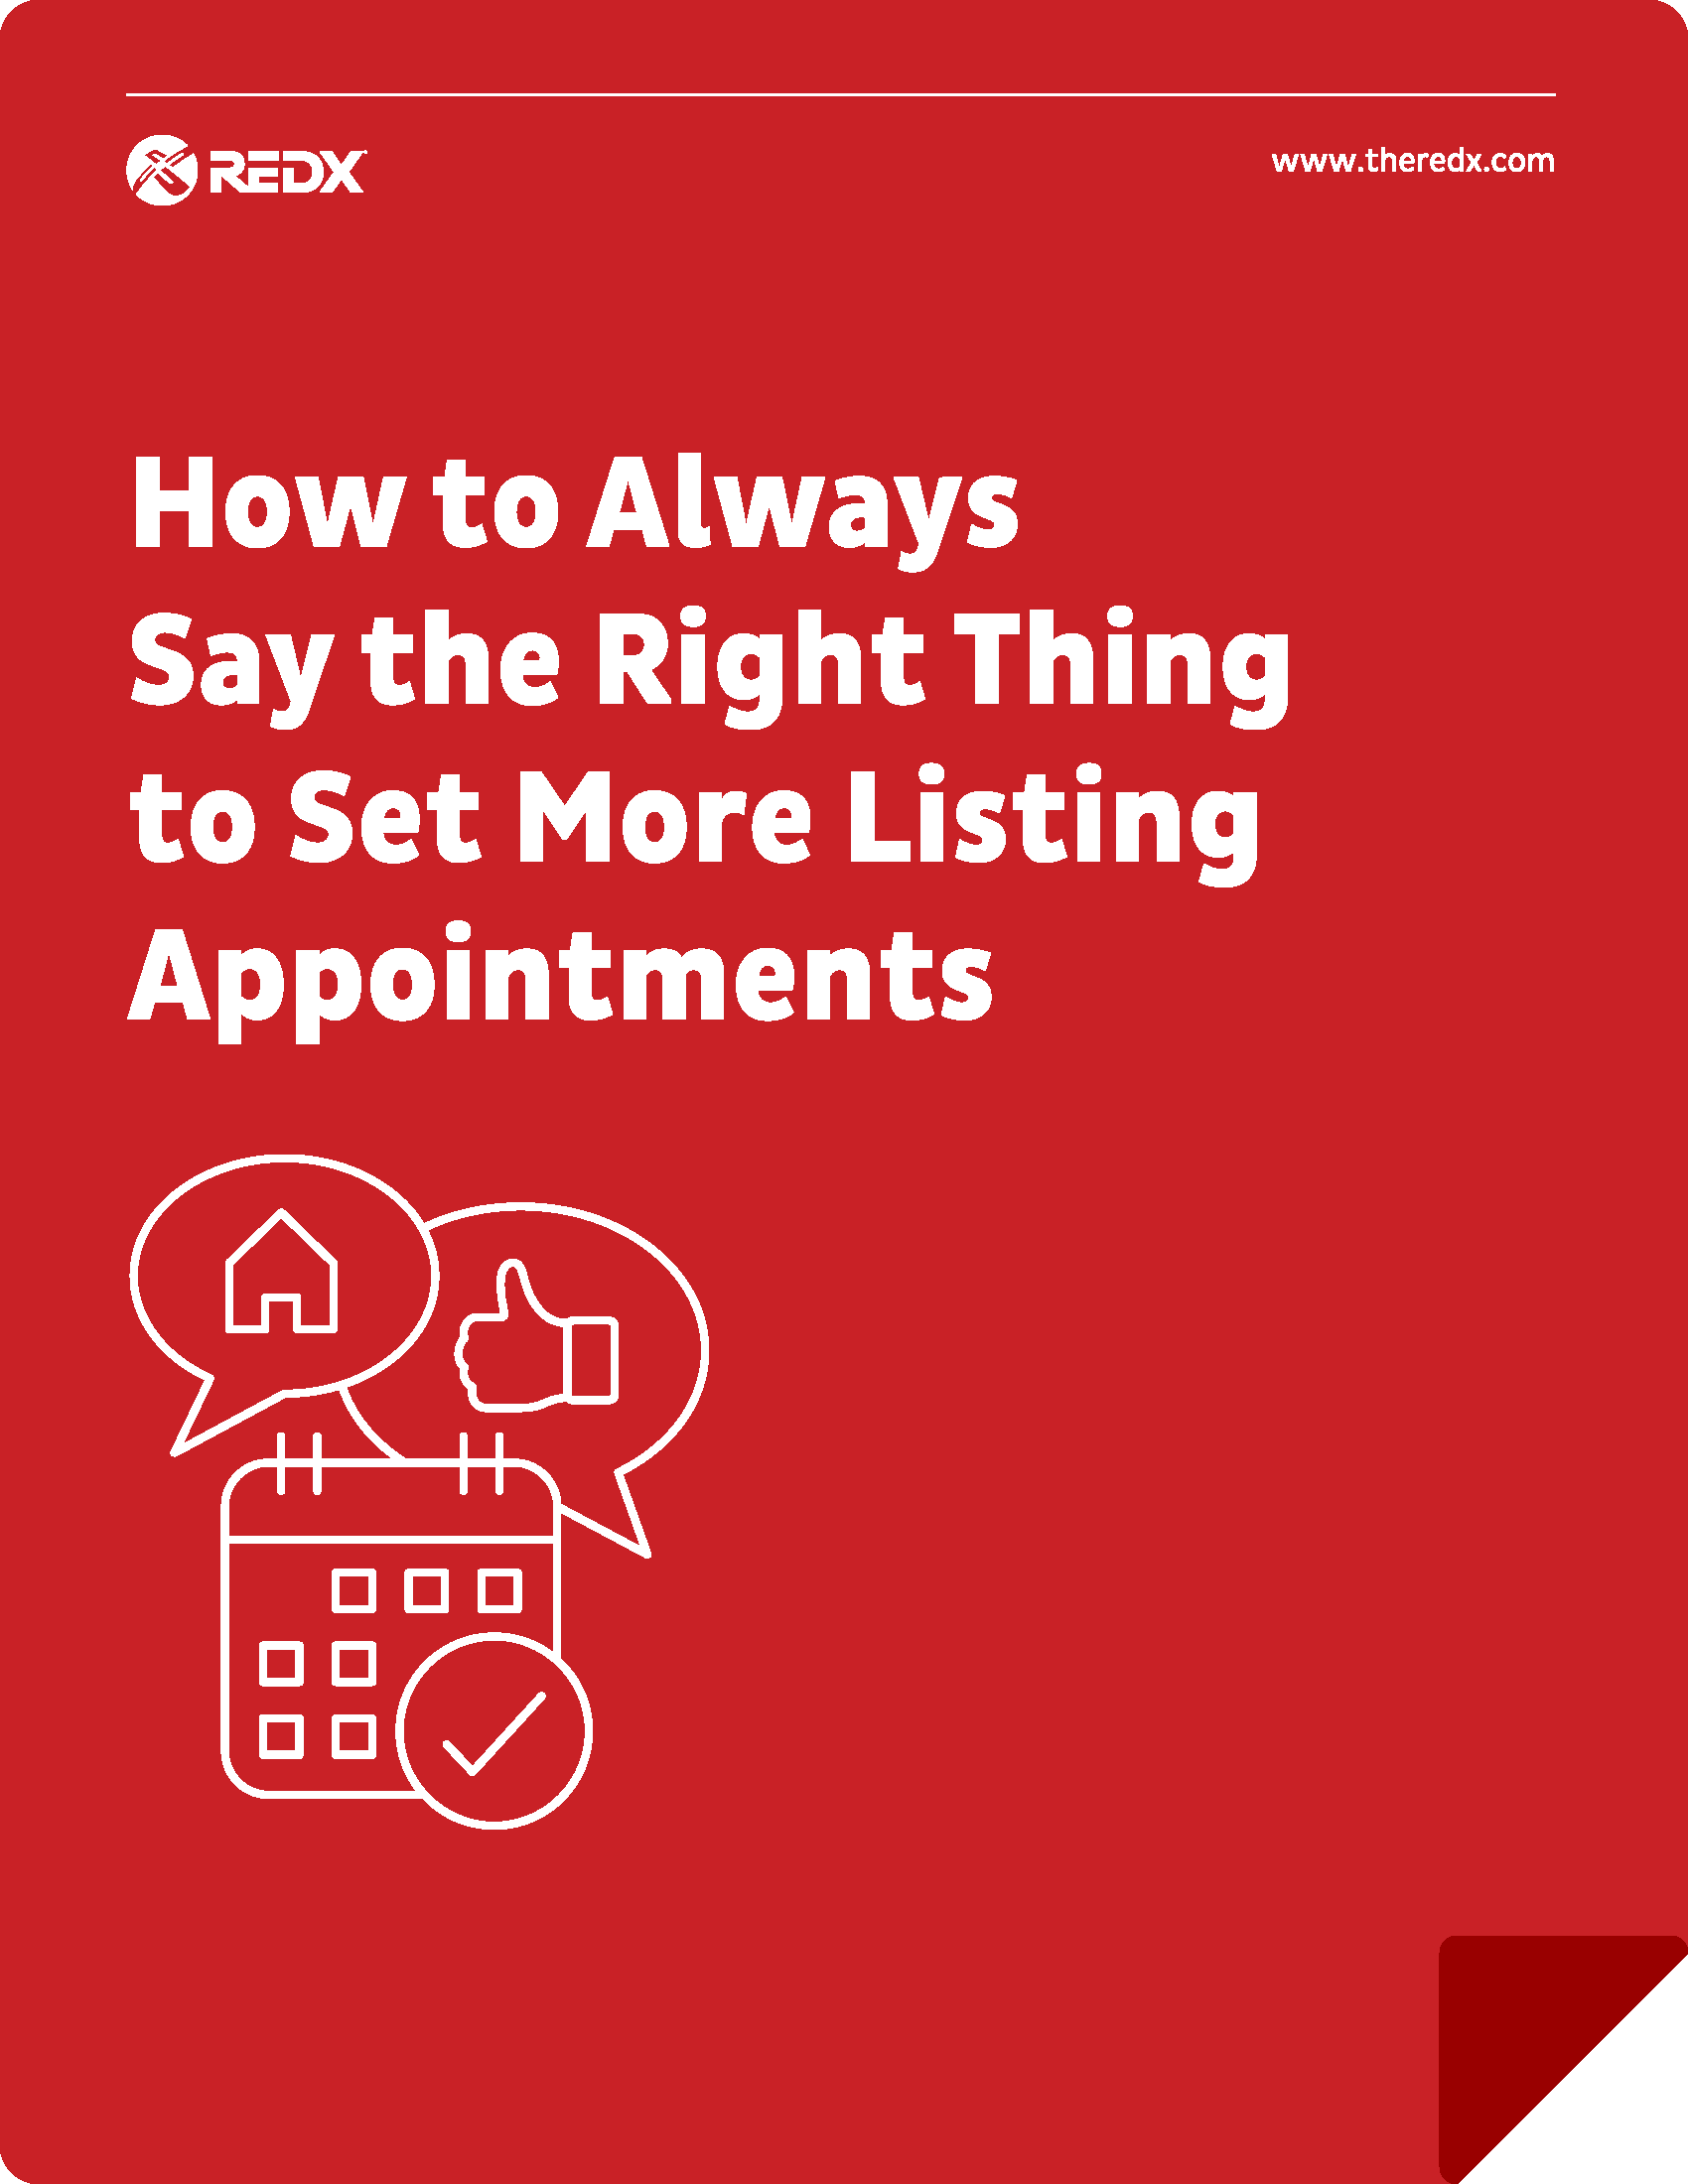 How to always say the right thing to set more listing appointments